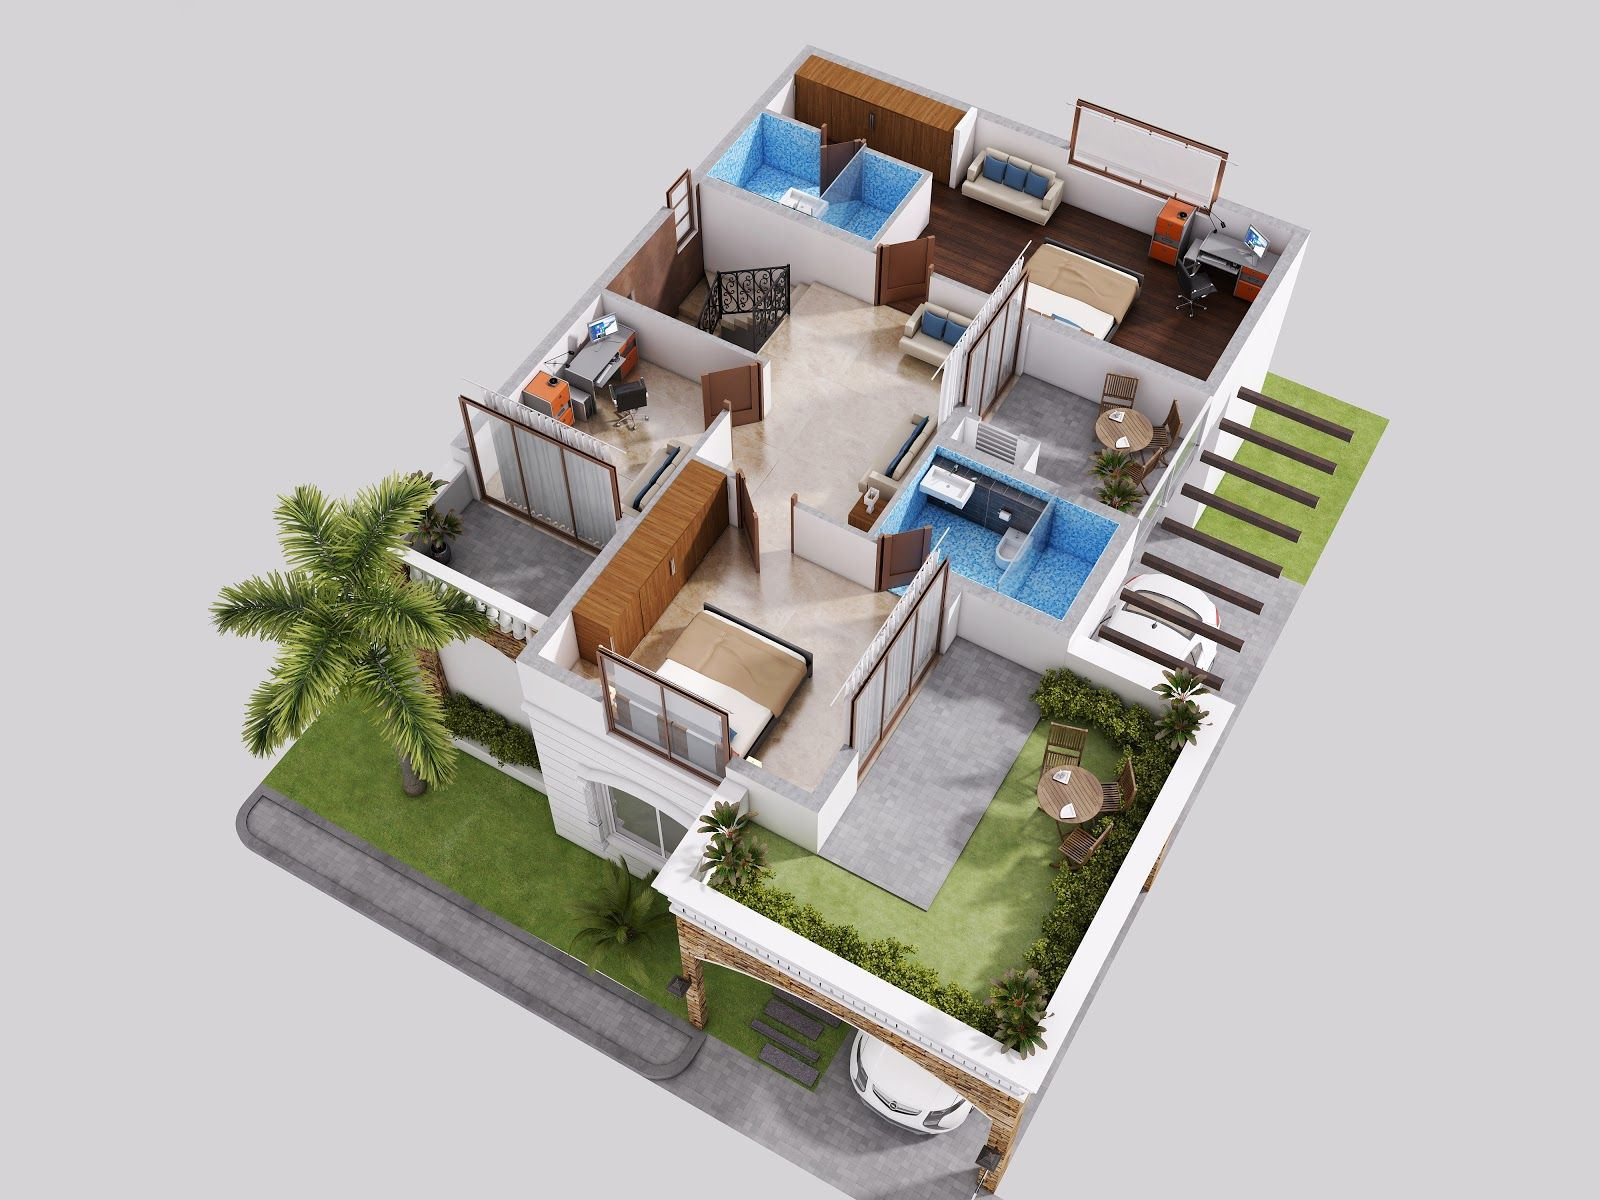 amazing 3d floor plan created by 3ds